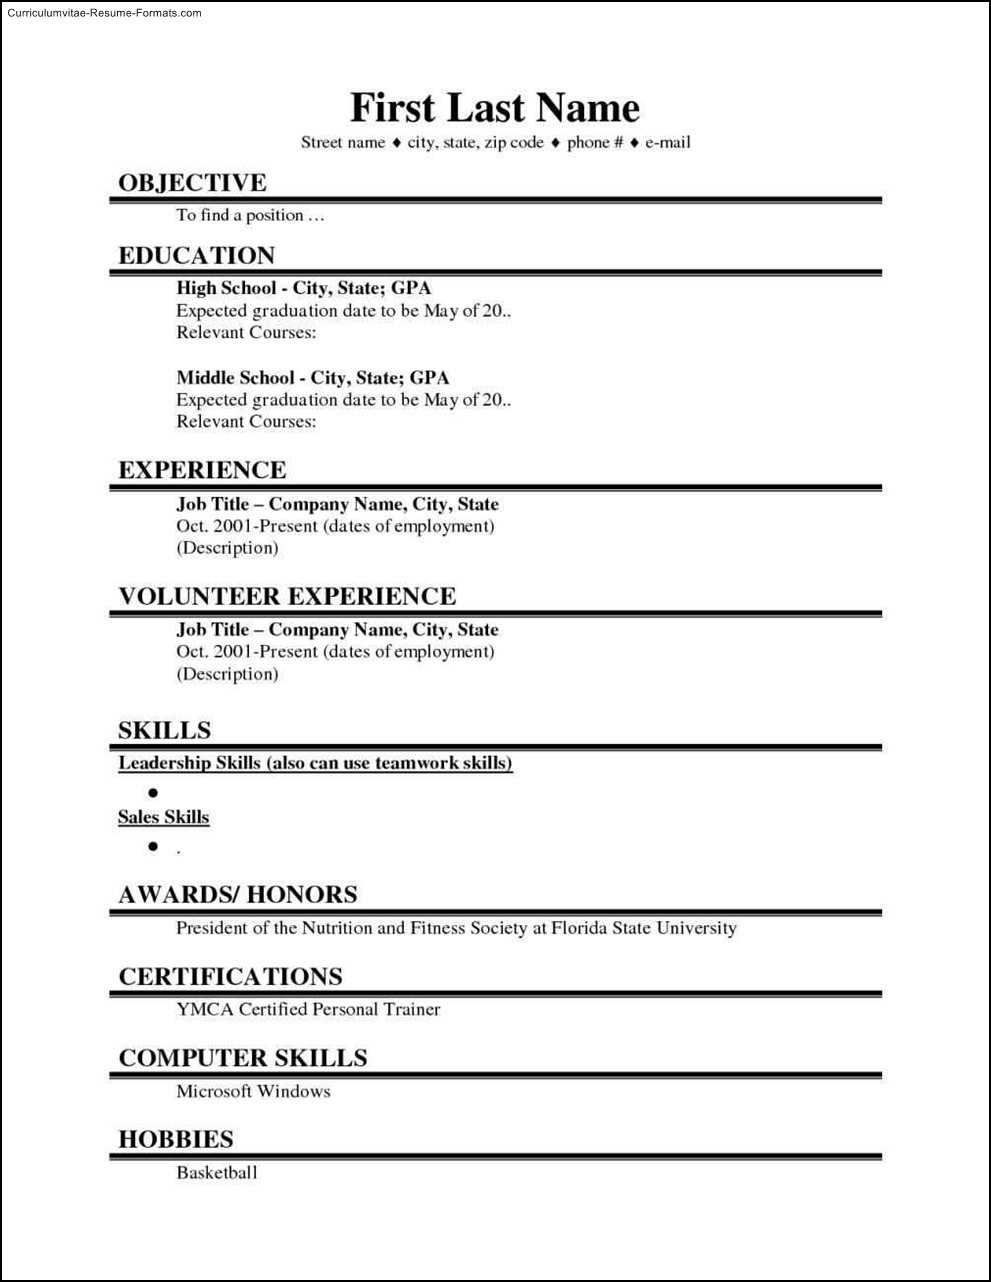 College Student Resume Template Microsoft Word Within College Student Resume Template Microsoft Word